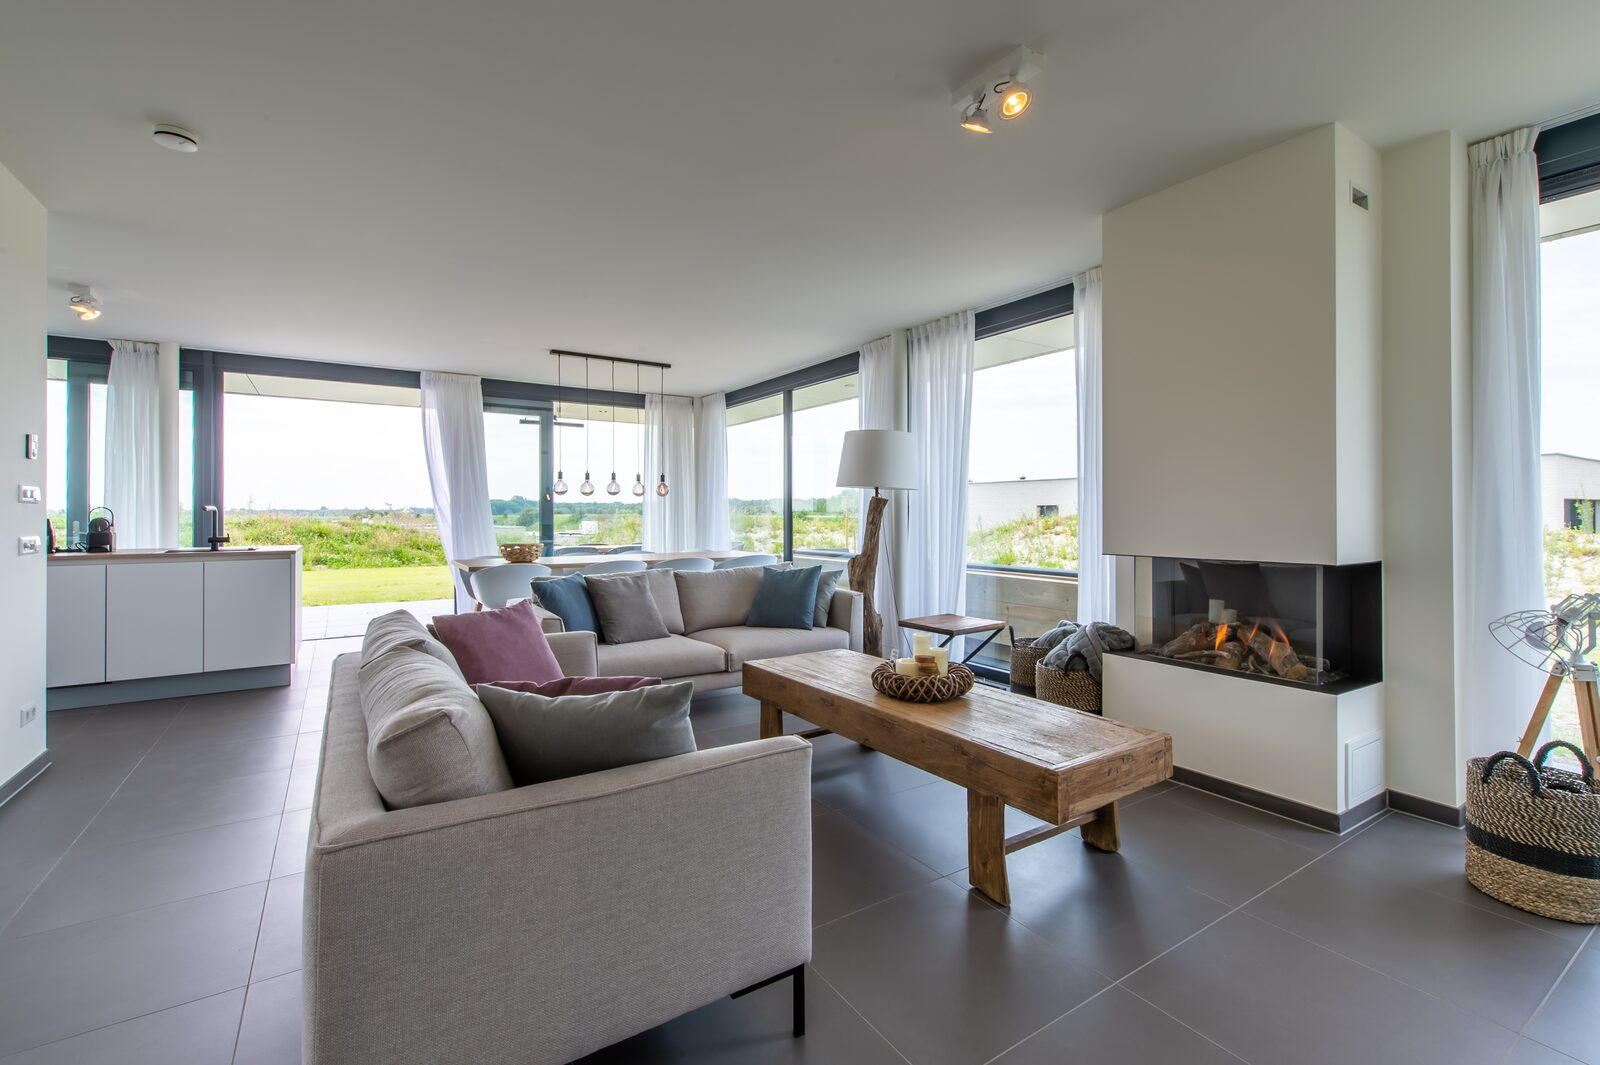 Luxury holiday home zeeland duinvallei 45 de groote duynen